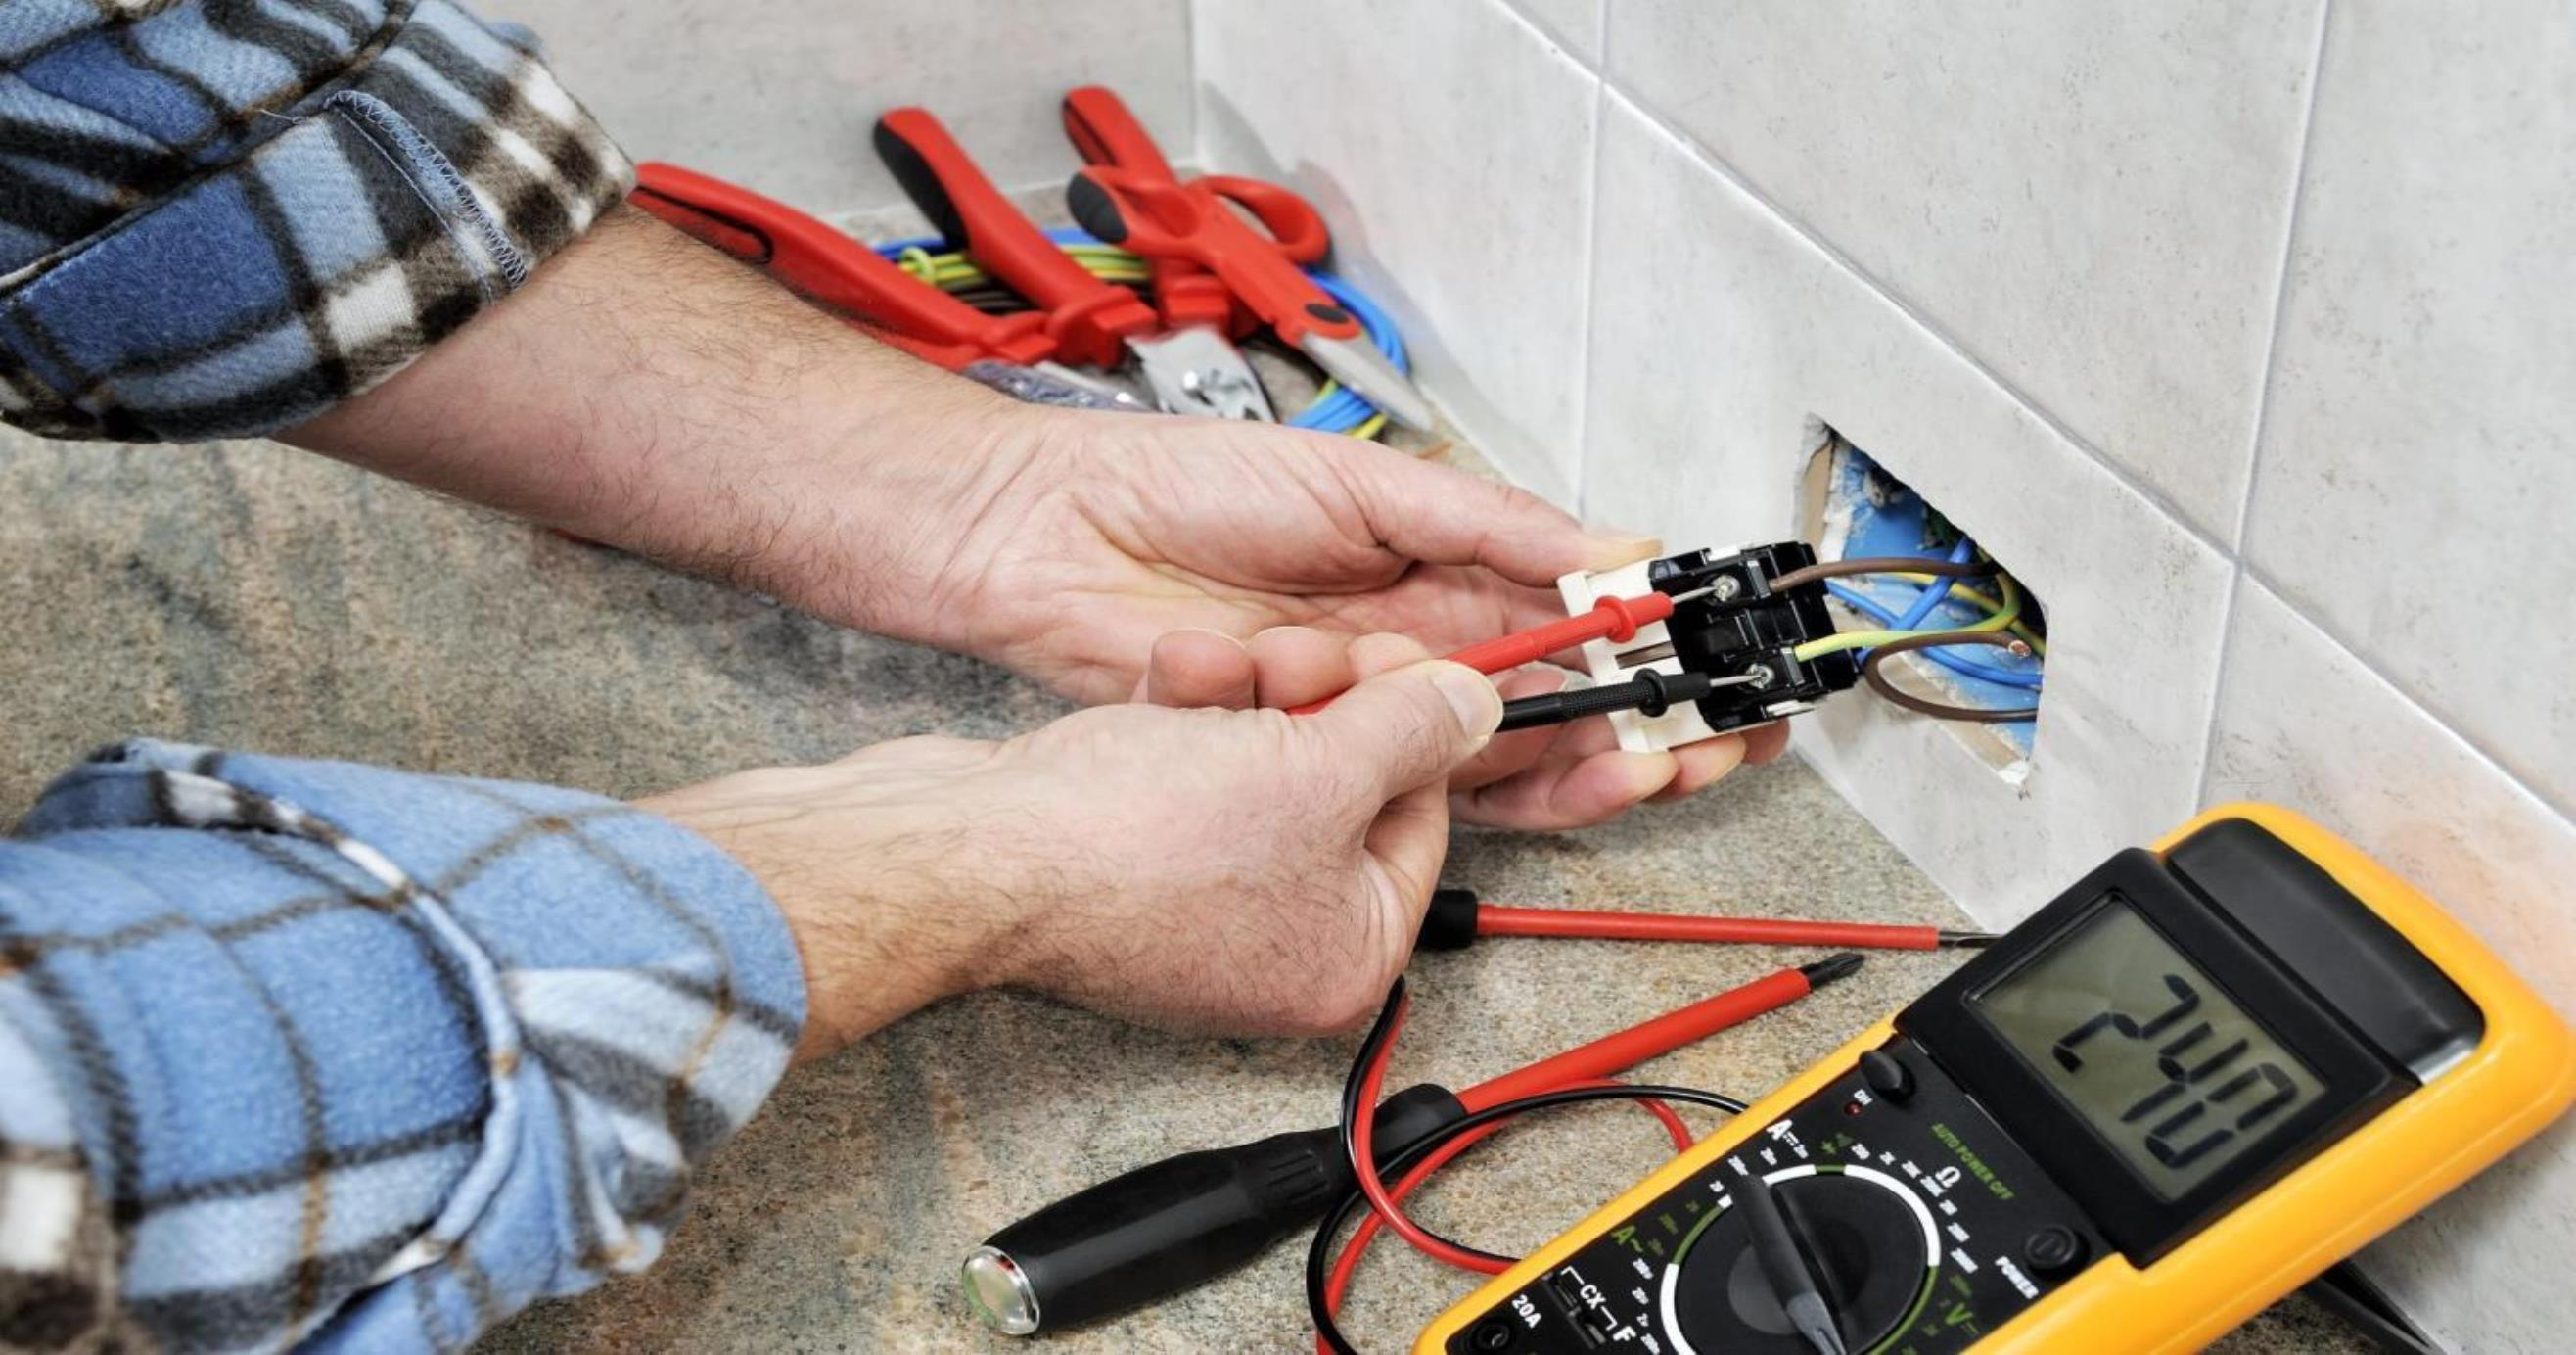 10 must have electrical tools for DIY projects